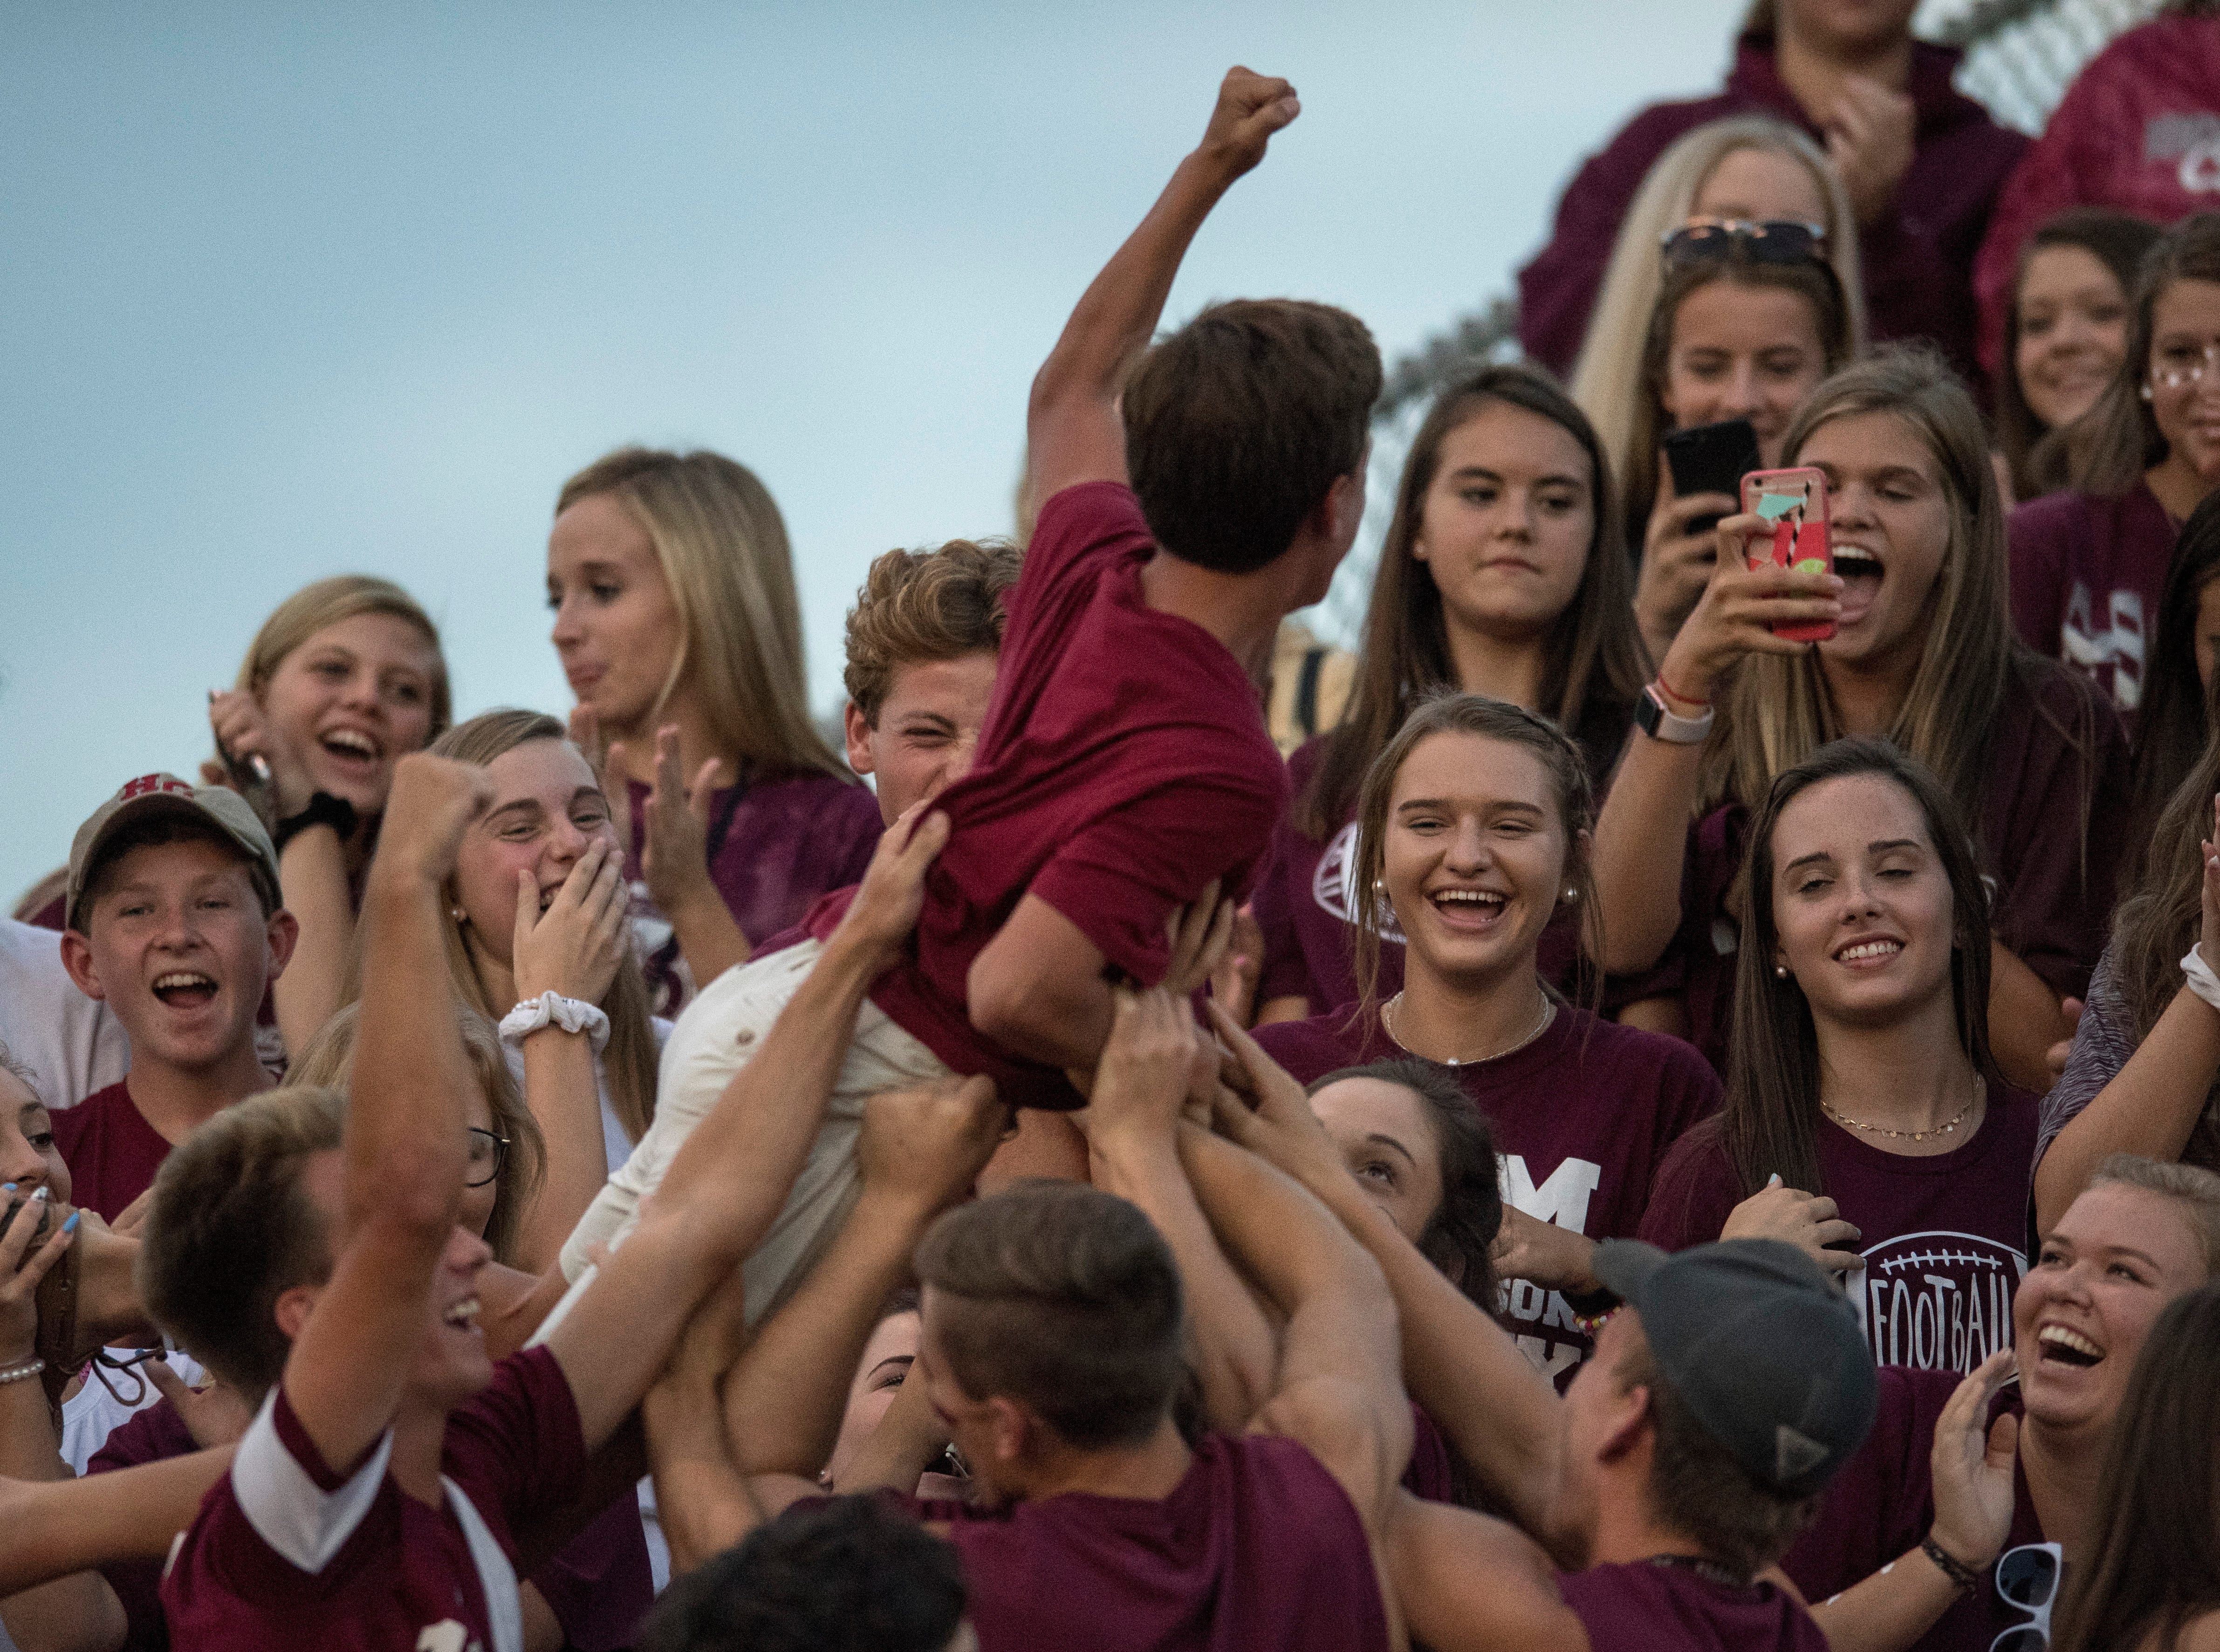 Fans take photos while cheering on the Henderson Colonels during the season opener against the Reitz Panthers on Friday, August 17, 2018. The Panthers defeated the Colonels 41-35 in the season opening game.